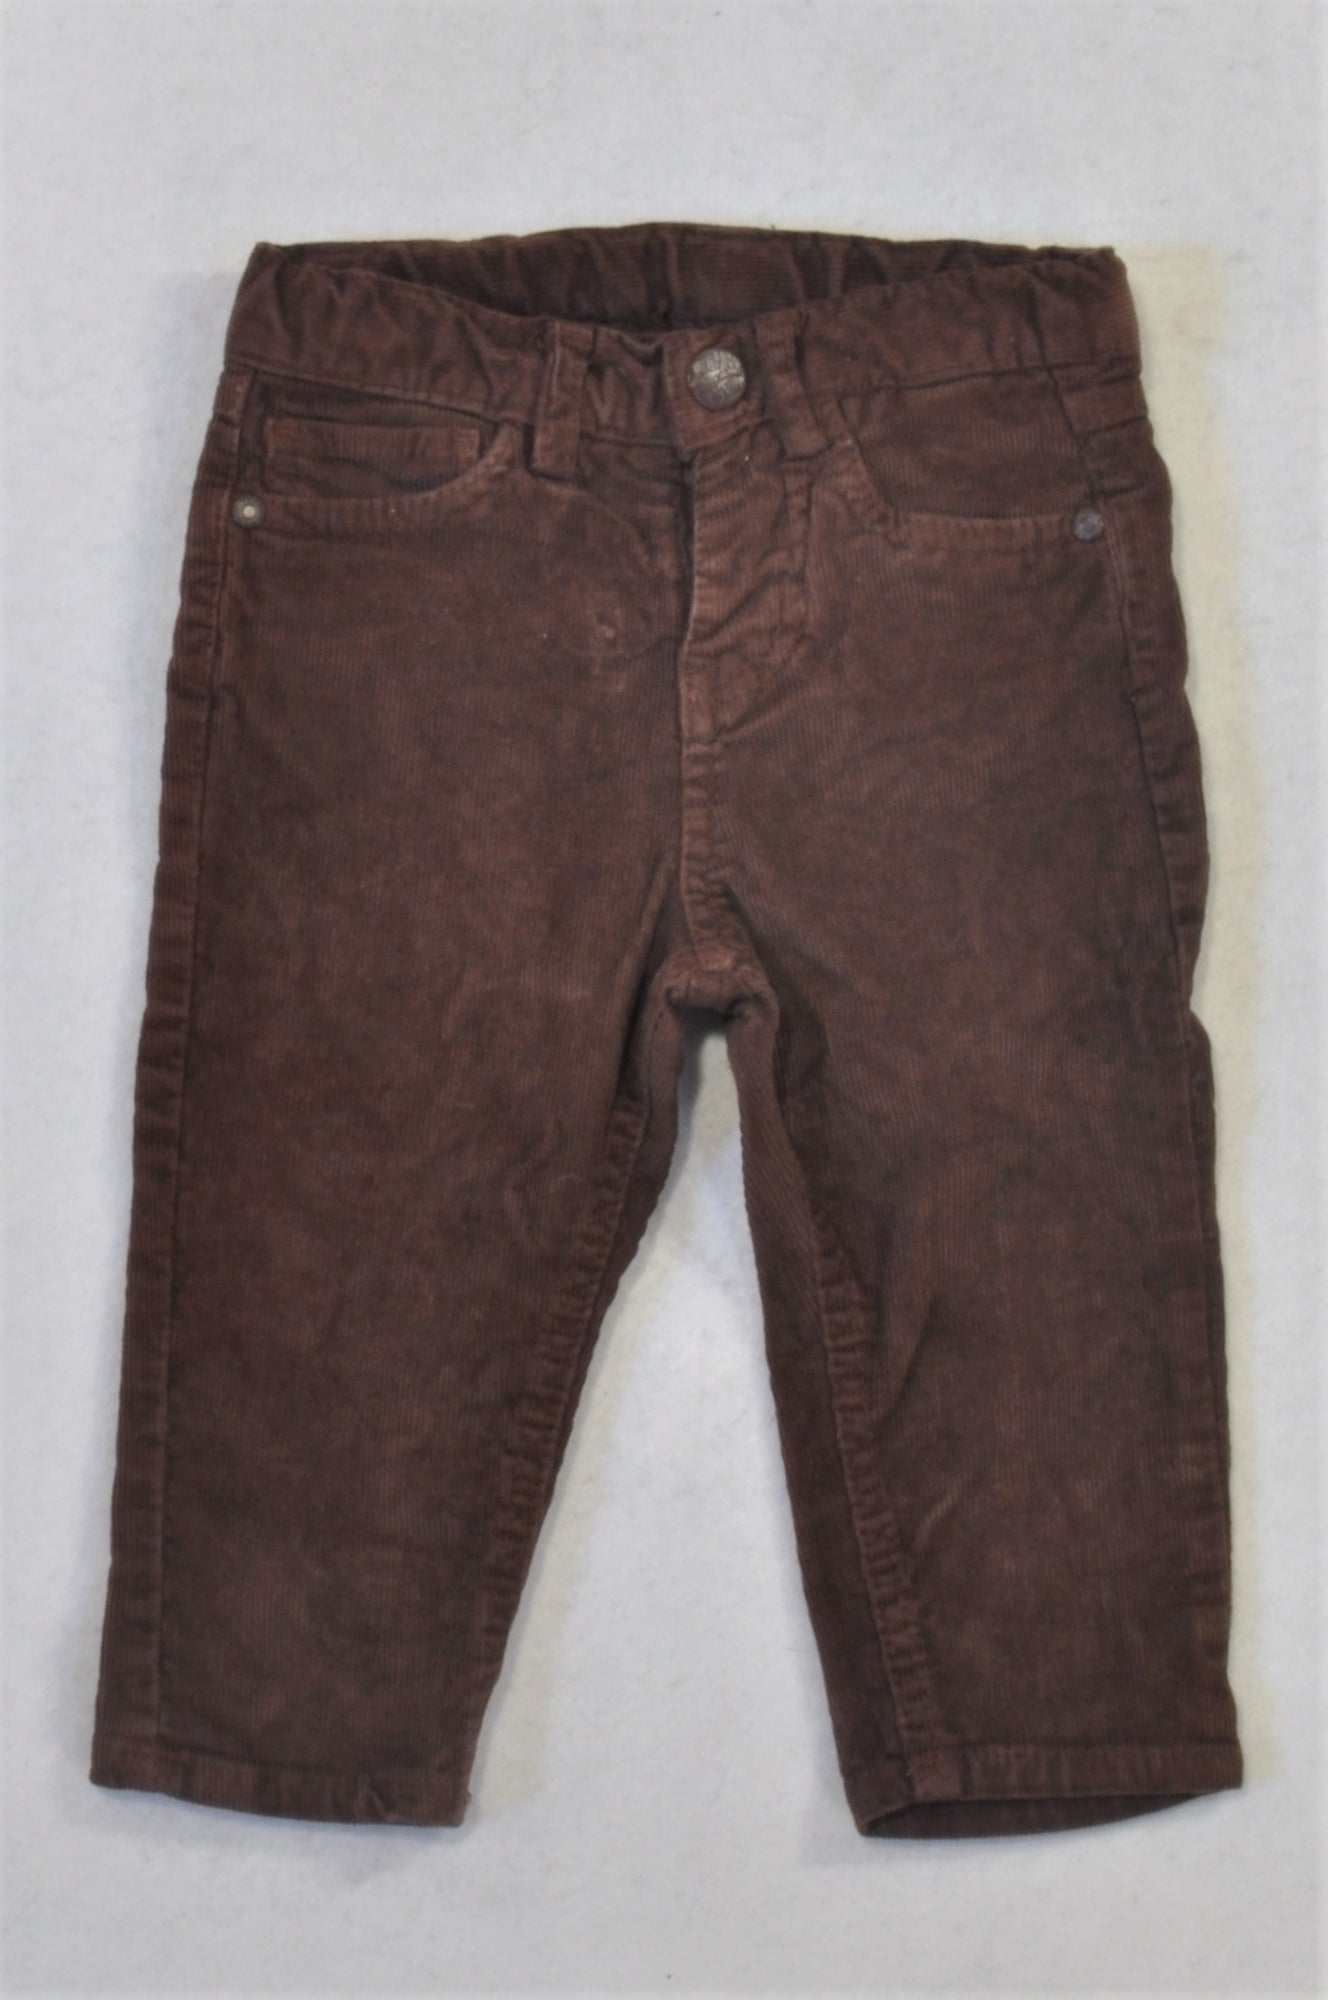 Marks & Spencers Basic Brown Corduroy Pants Boys 9-12 months